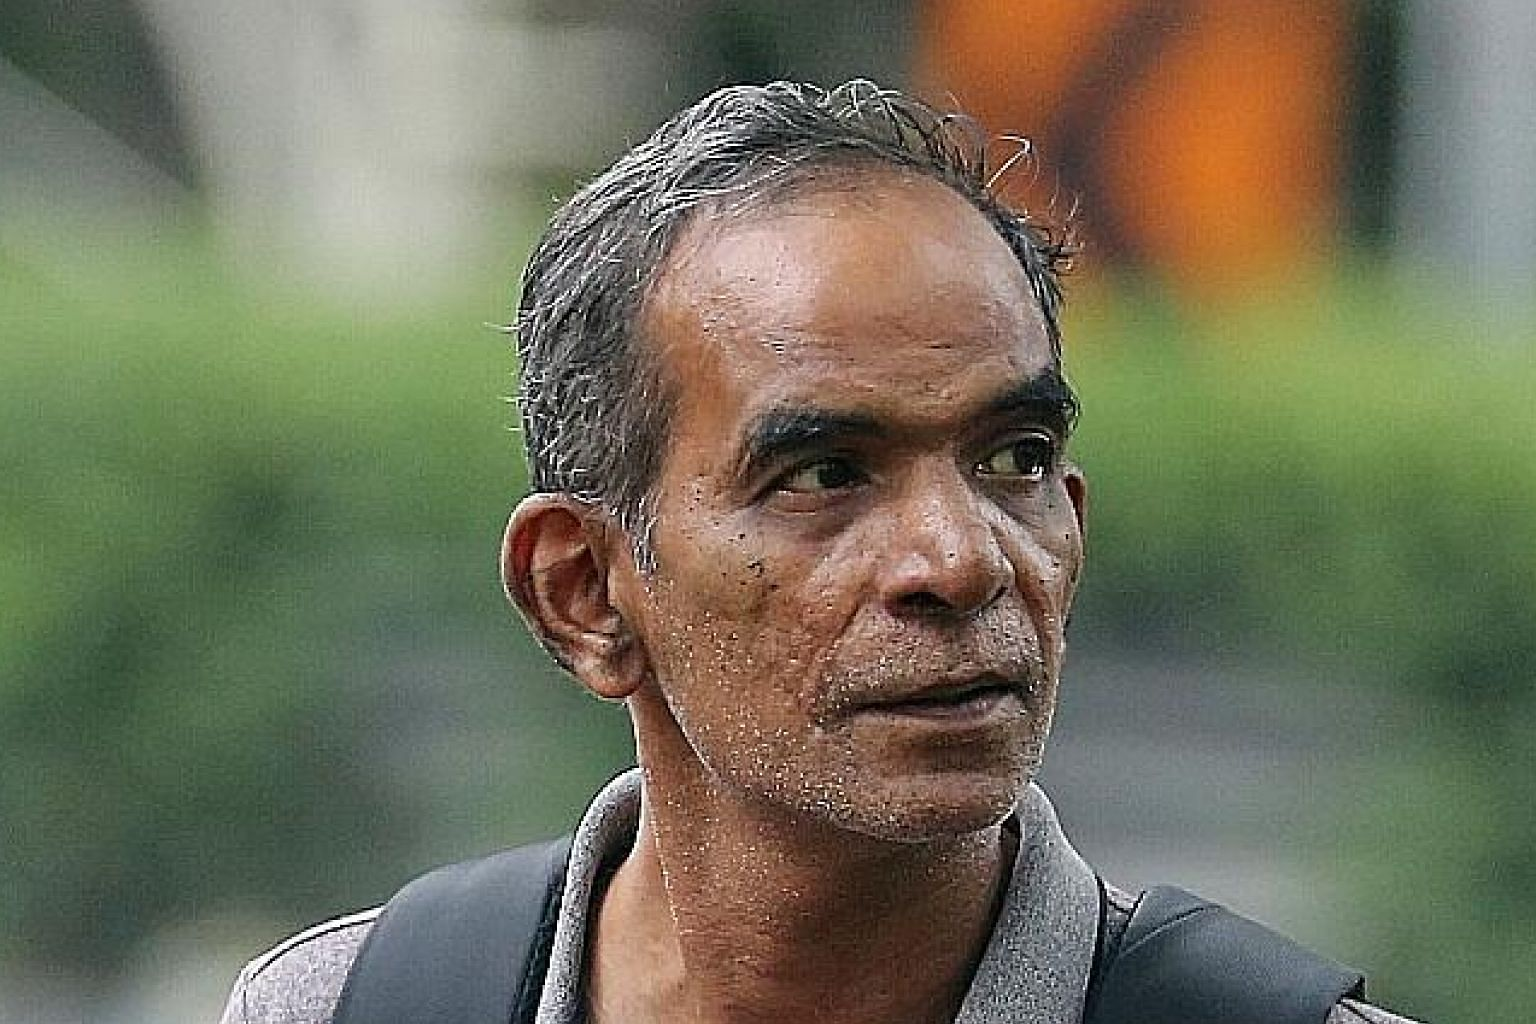 Alagappan Singaram (top) was fined $5,000. His son, A. Hariprasanth will be sentenced on April 16. Right: The pair set off an unlawful fireworks display in Bukit Batok West Avenue 6 at around 7.40pm on Nov 6 last year.